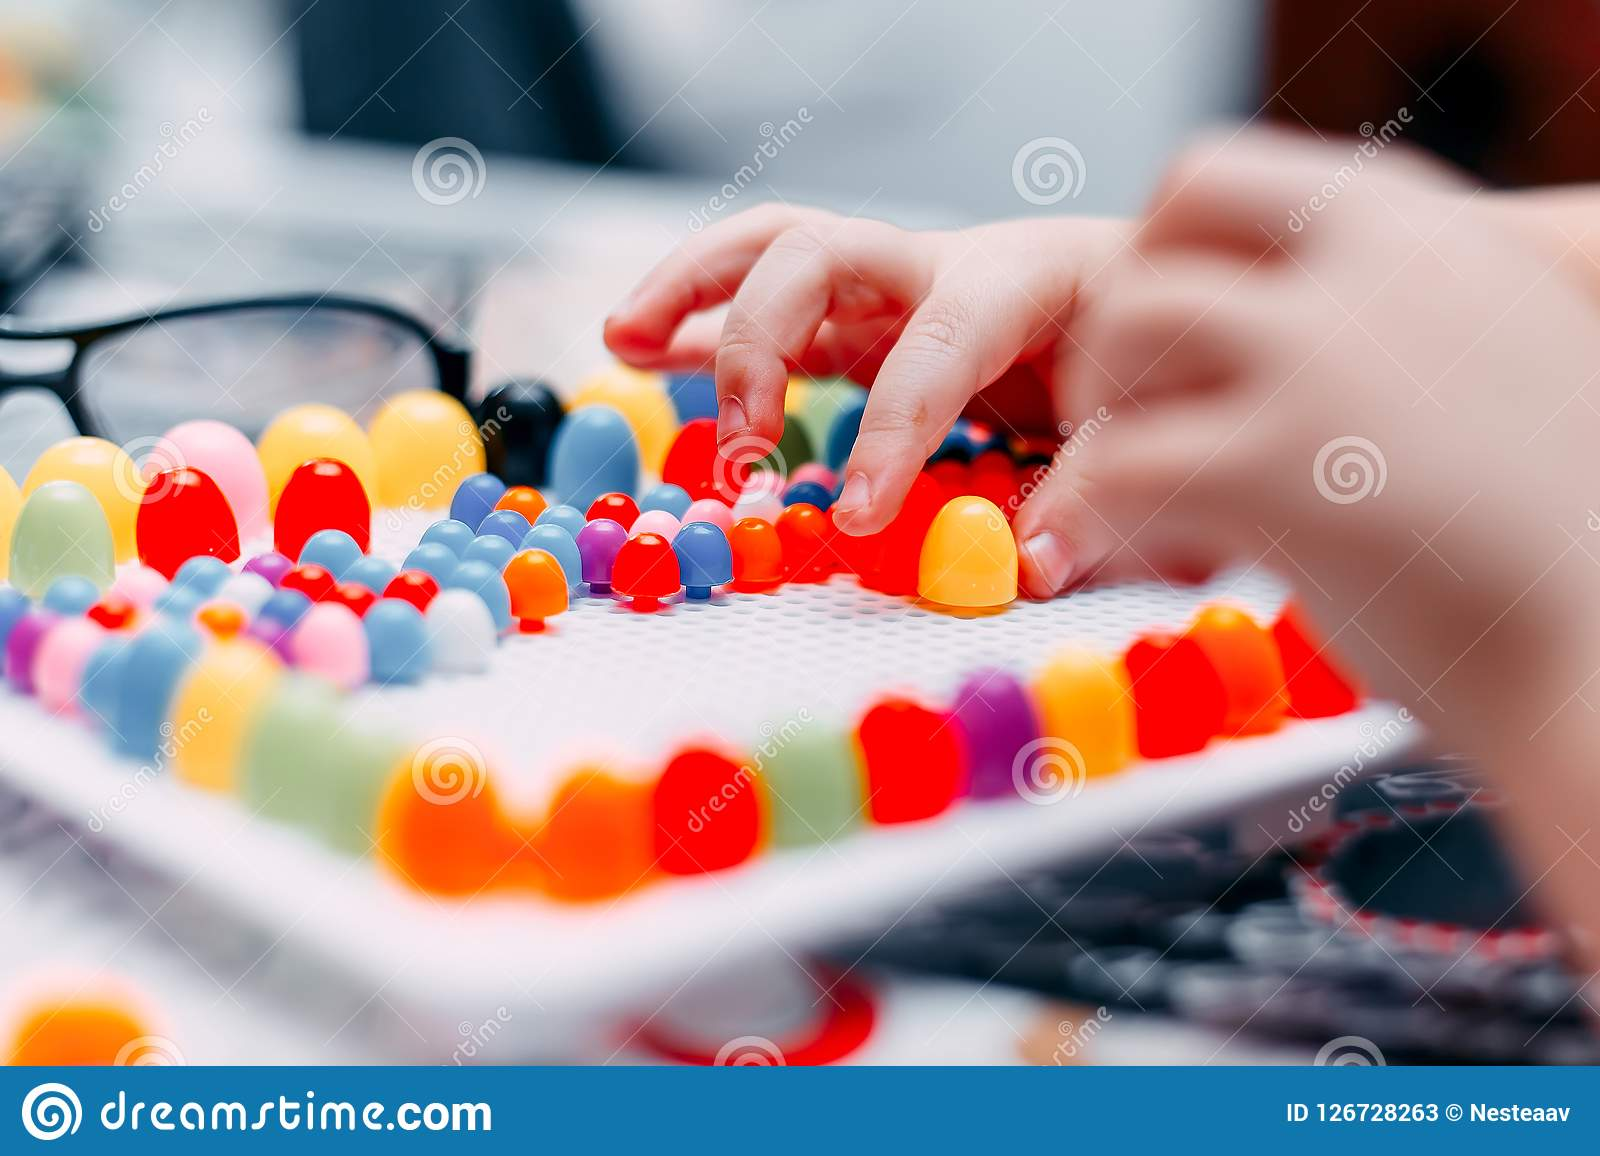 Little boy play board game on table mosaic colored. Game for fingers learn motoric Stock Photos